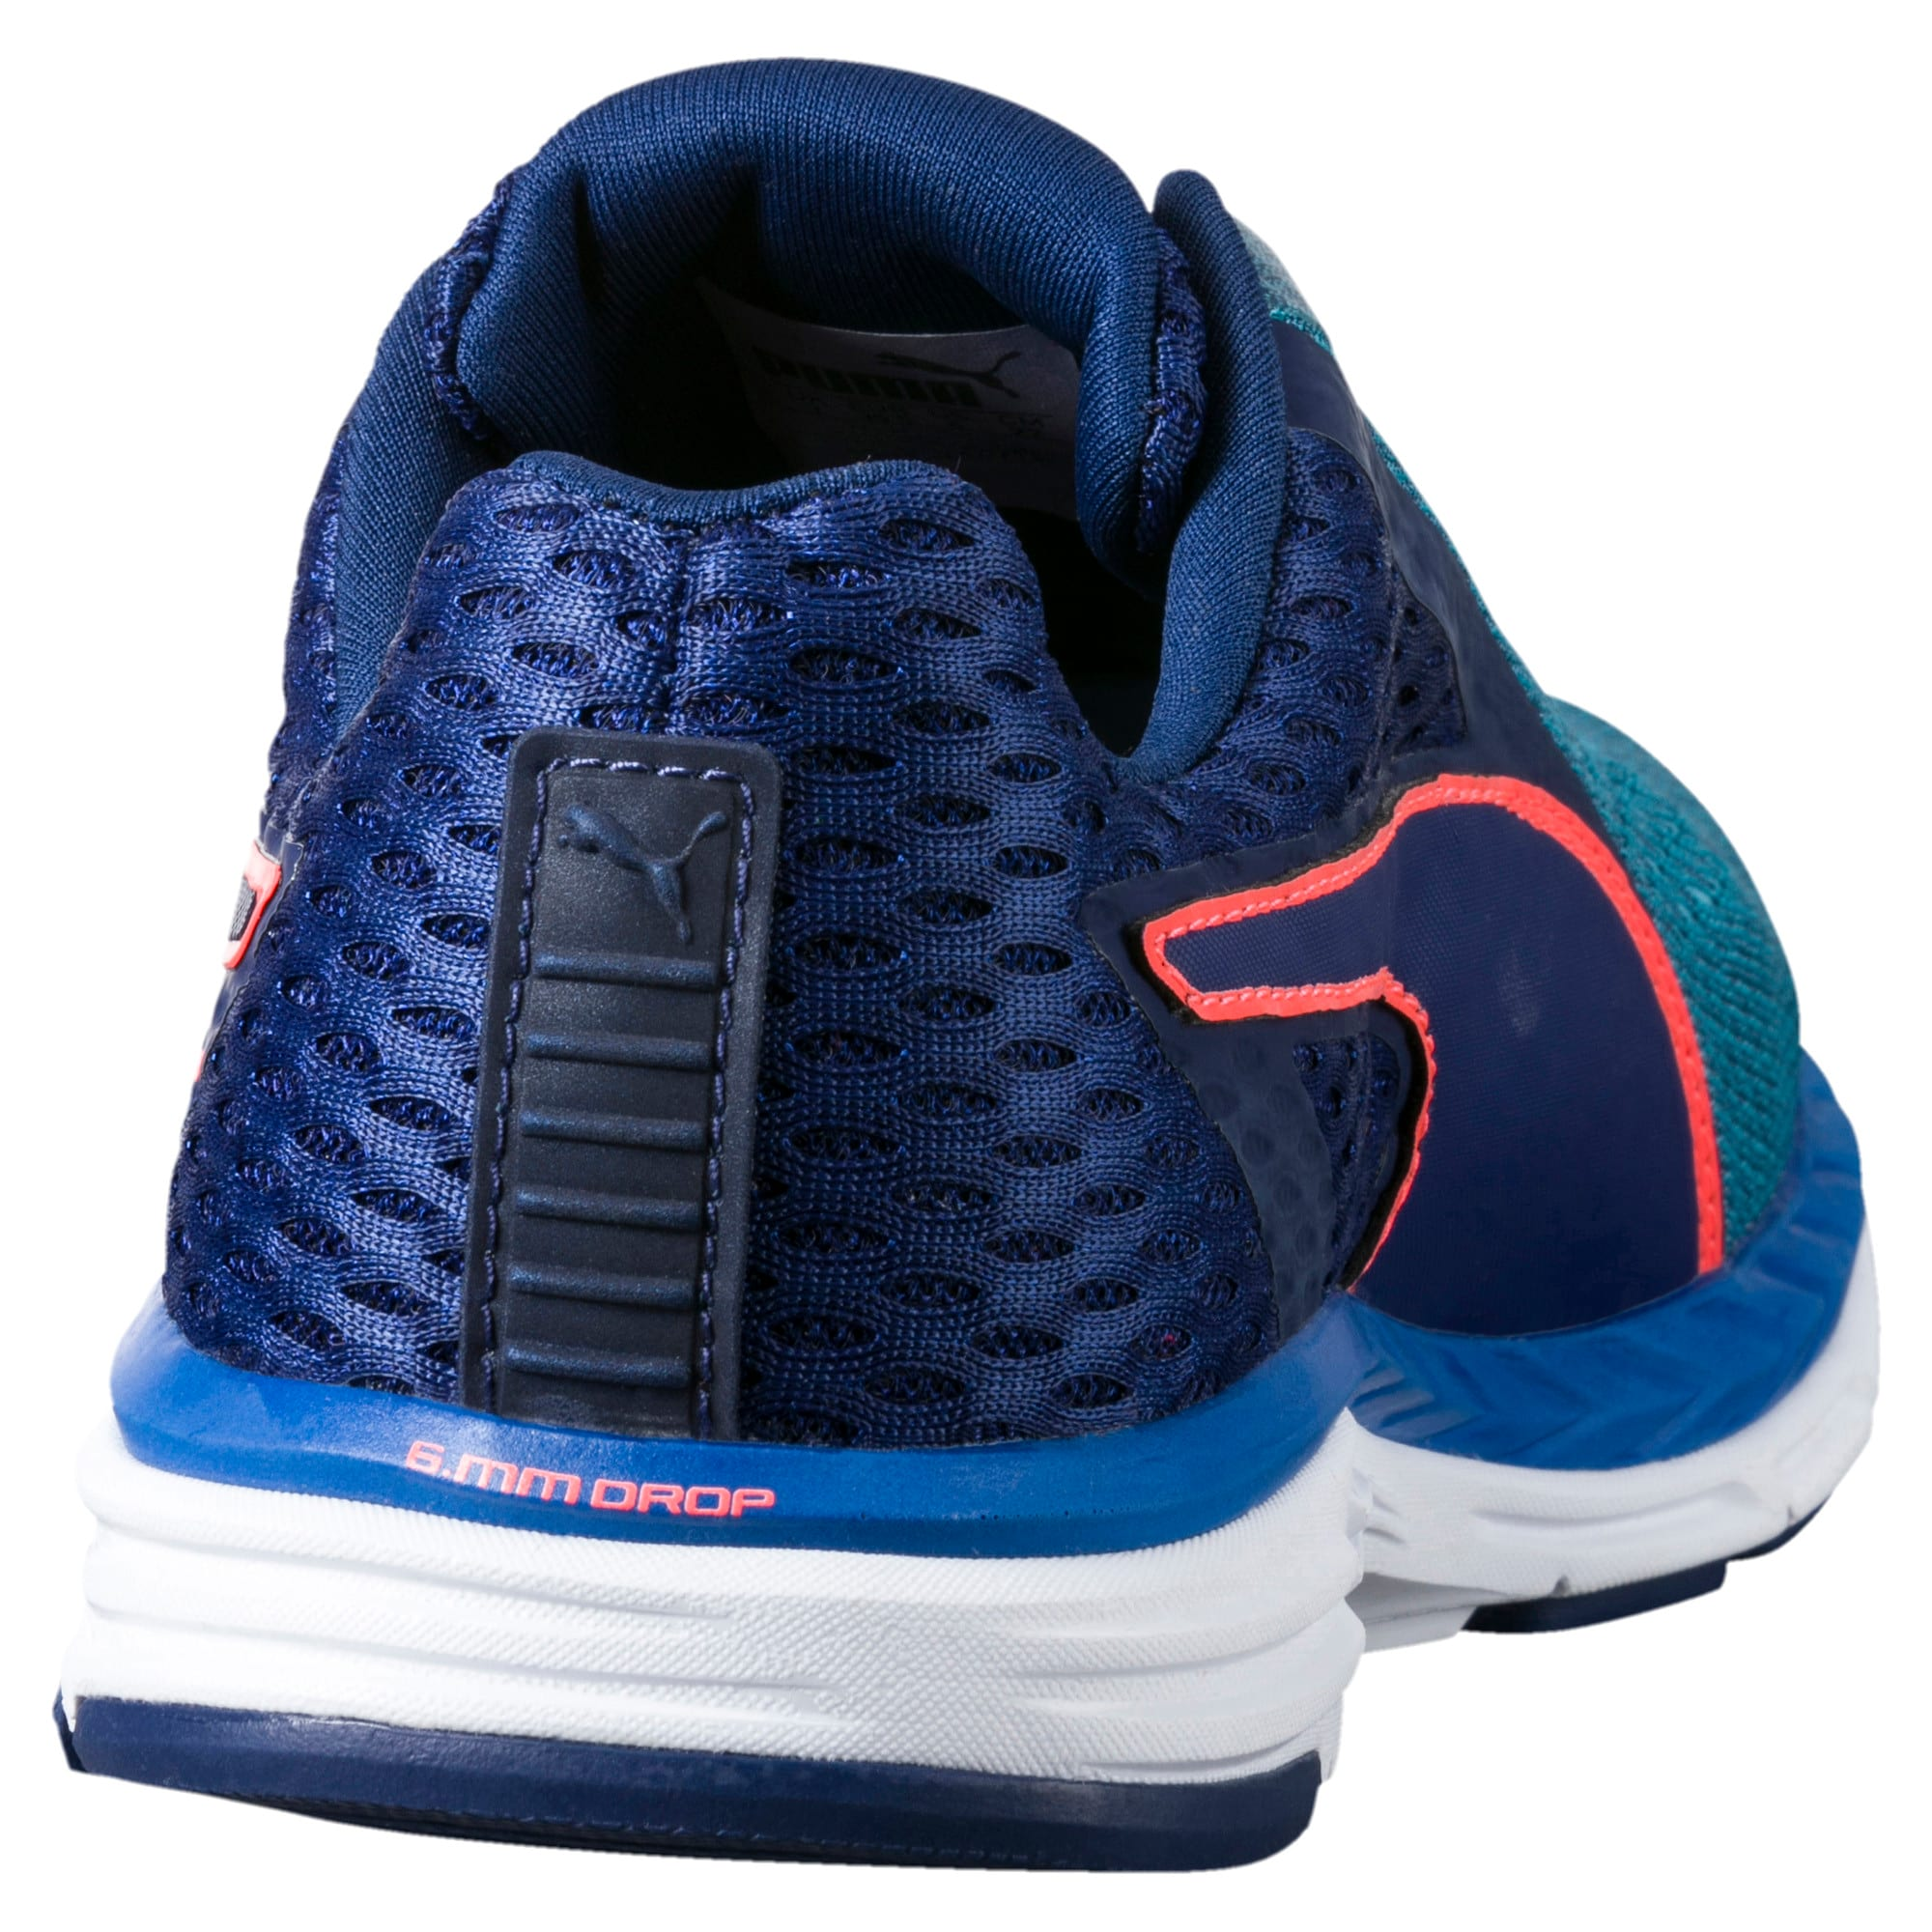 Thumbnail 3 of Speed 500 IGNITE 2 Kids' Running Shoes, Nrgy Turquoise-Blue Depths, medium-IND